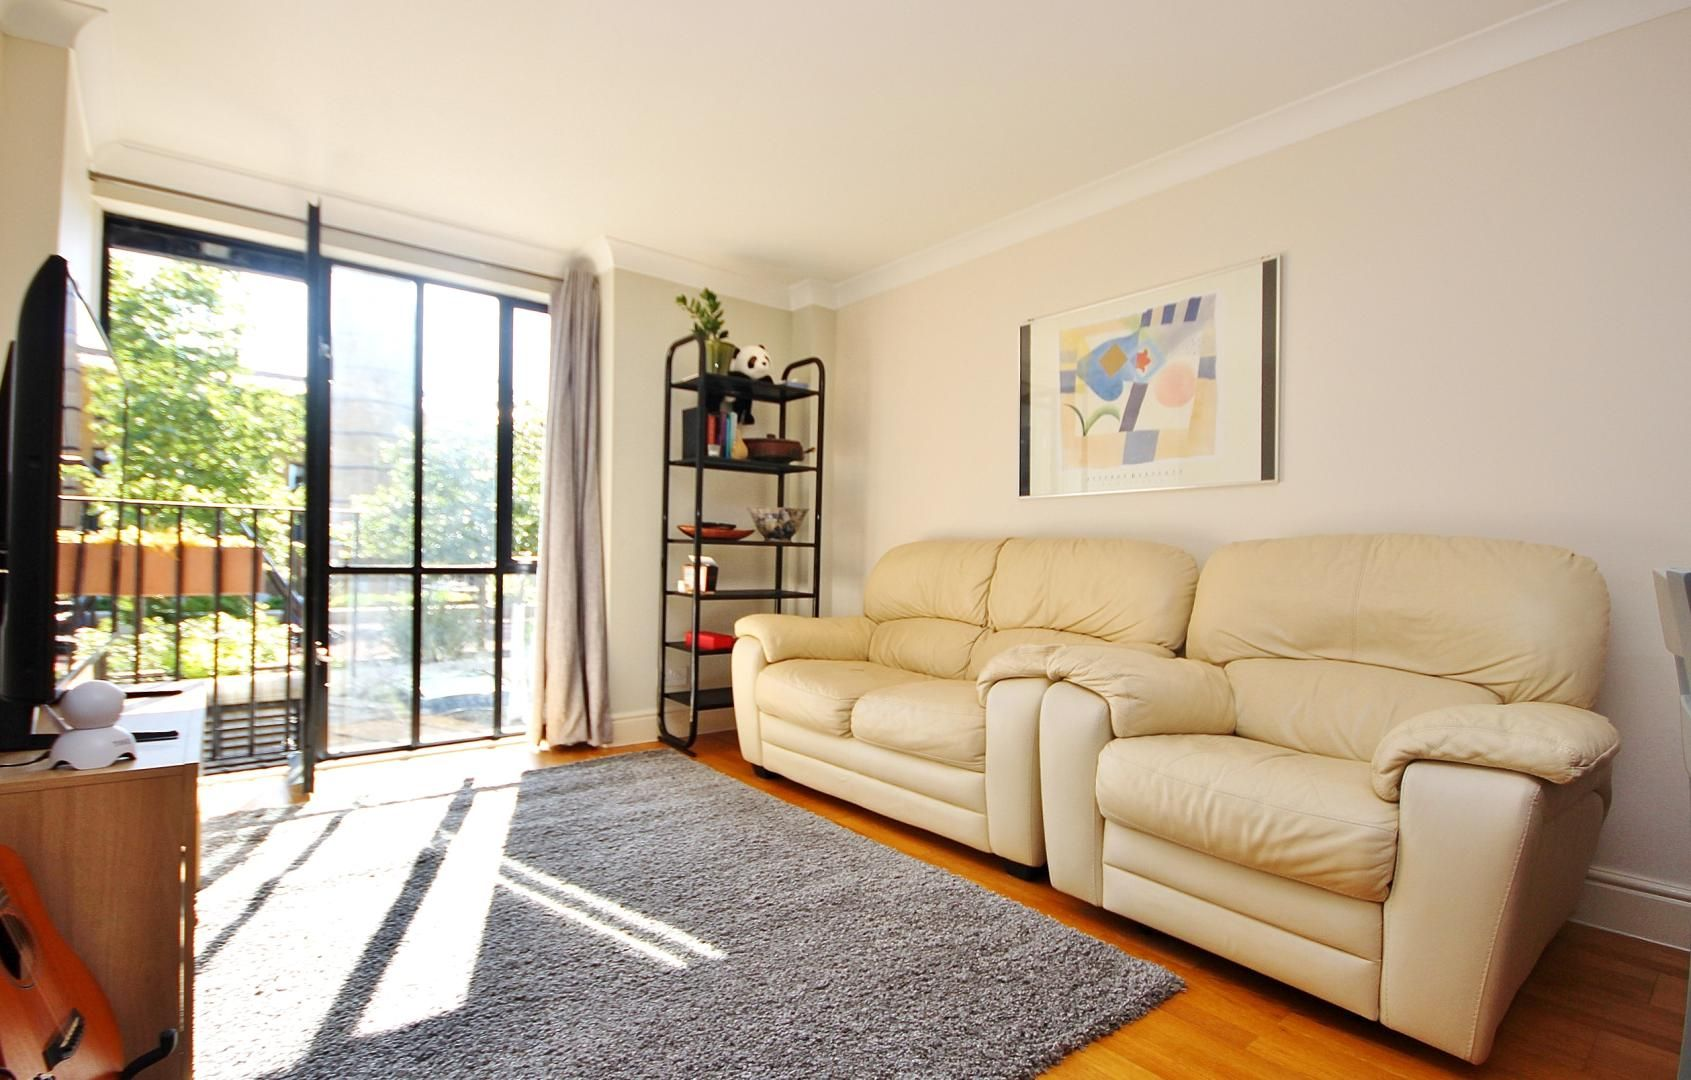 1 bed flat to rent in Taffrail House, E14